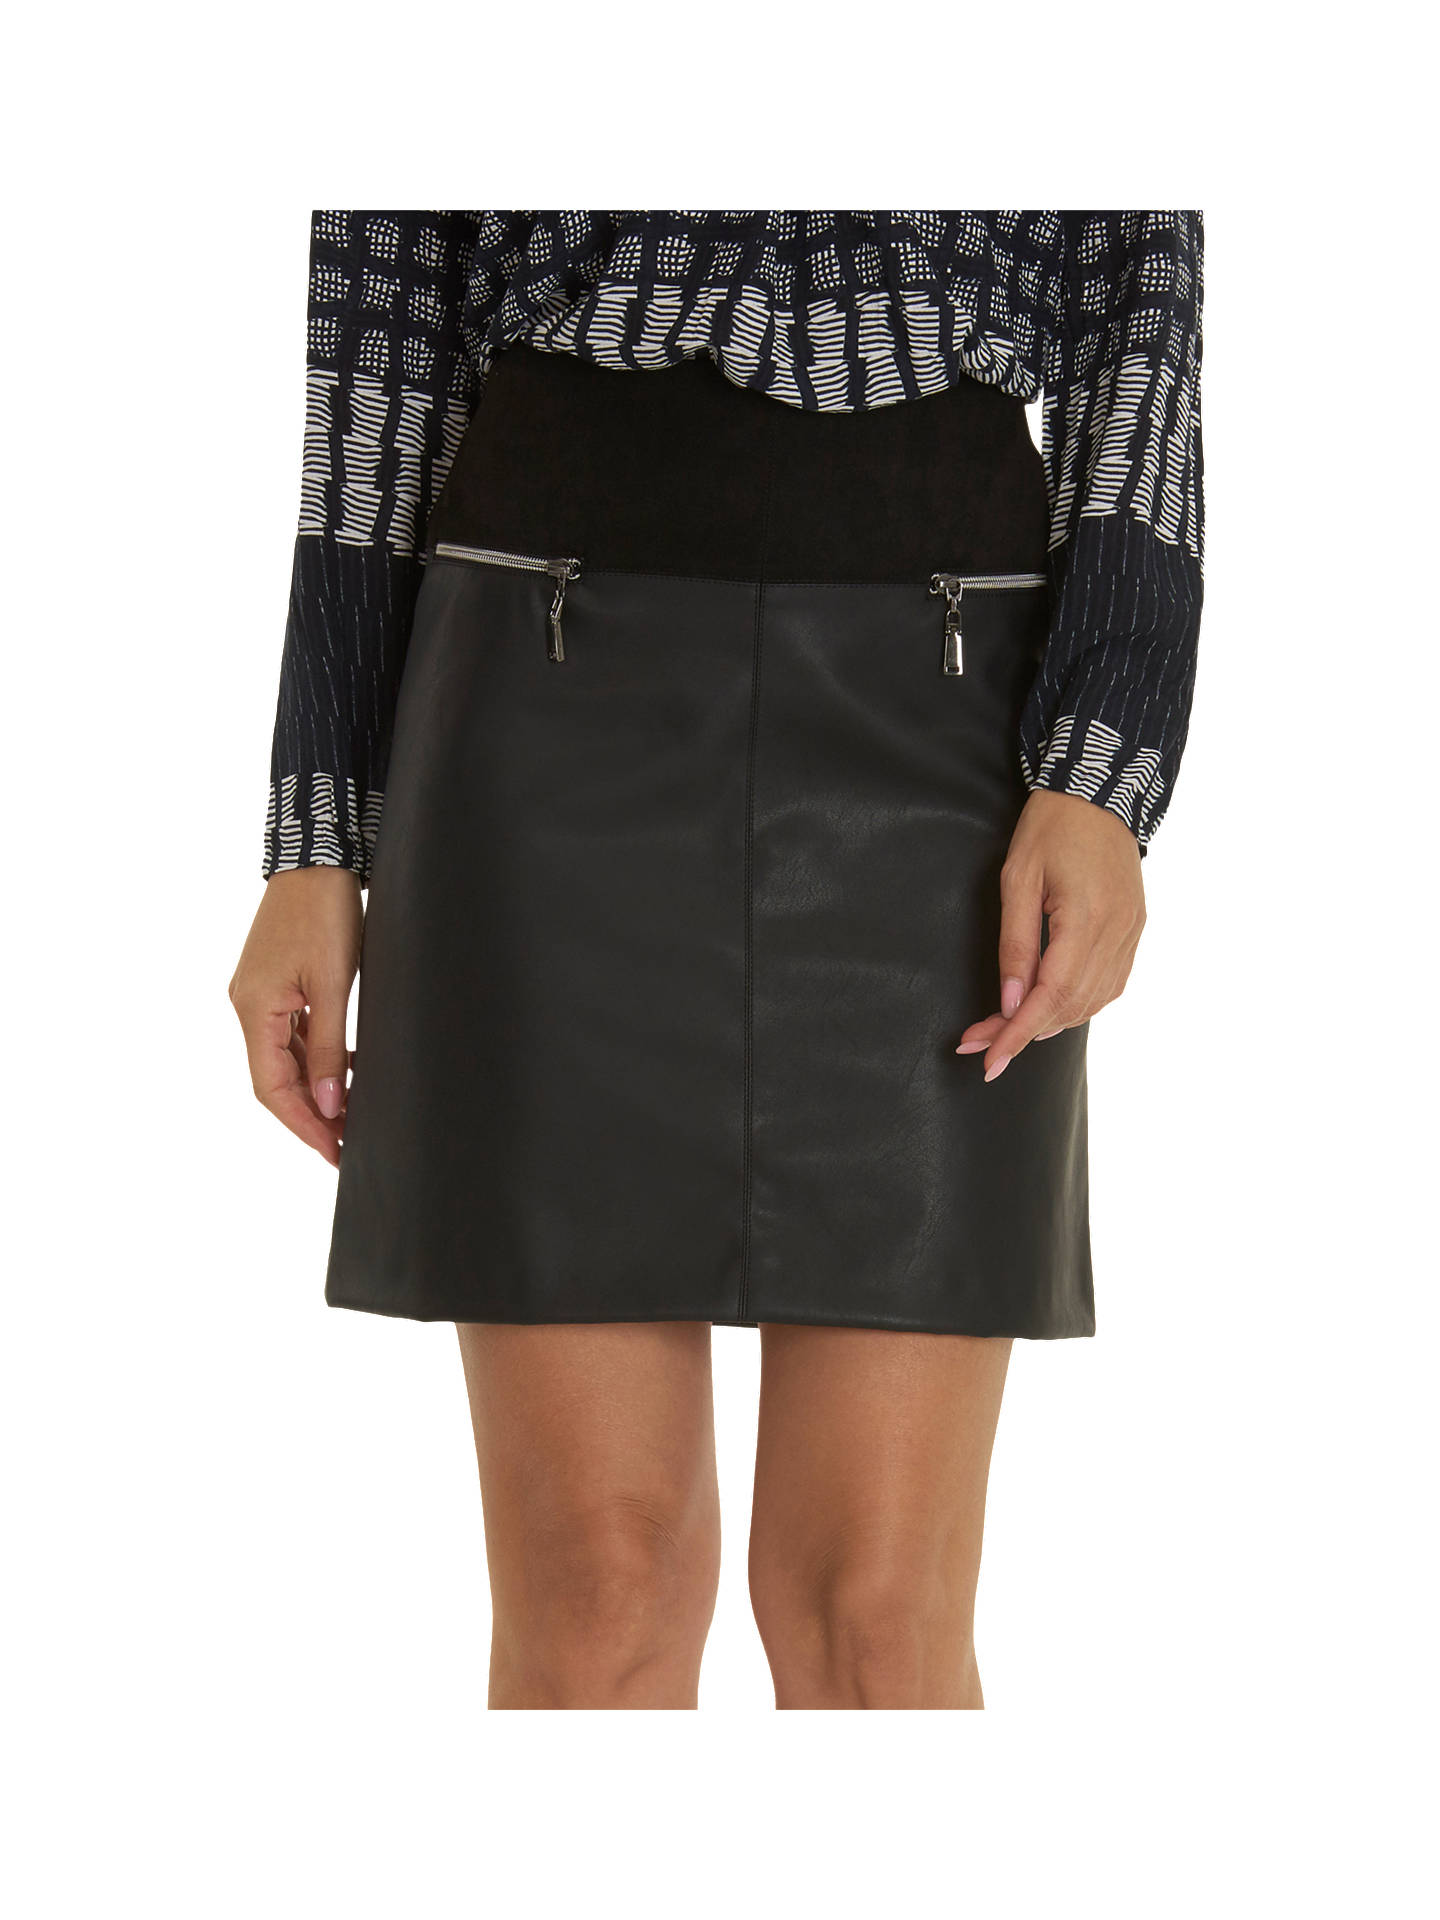 BuyBetty Barclay Faux Leather Skirt, Black, 10 Online at johnlewis.com